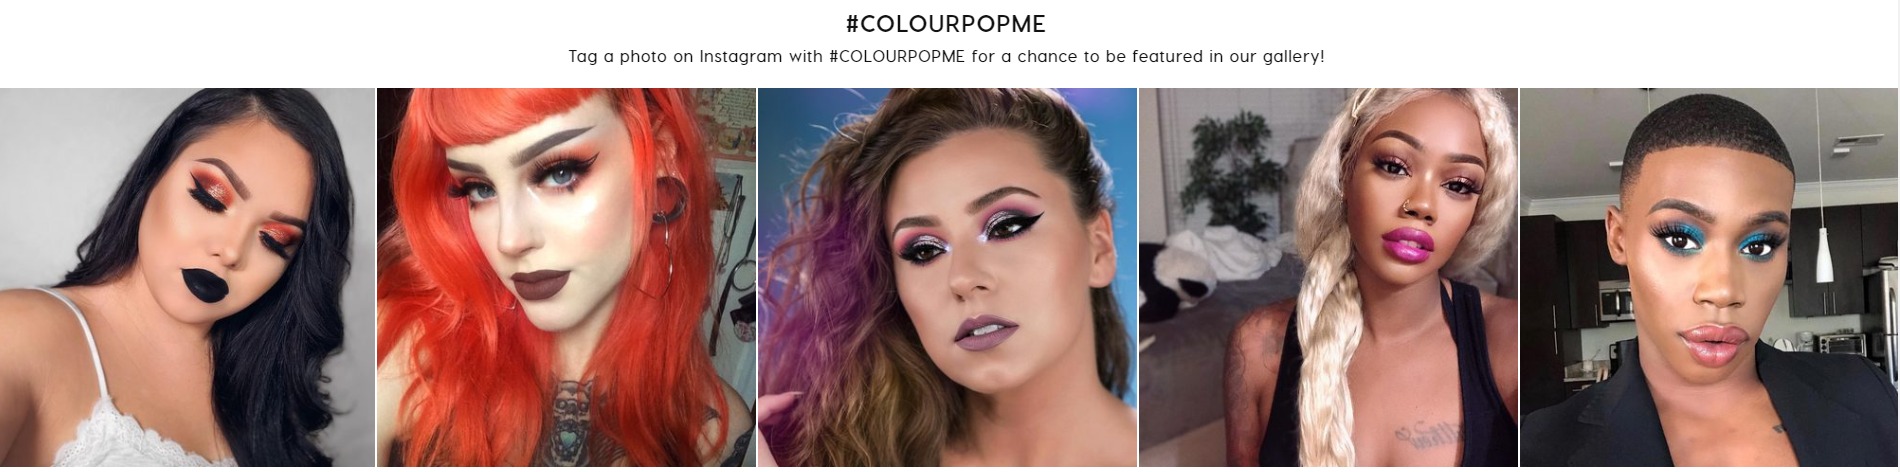 Lookbooks are all the rage right now for beauty brands promoting their hashtags